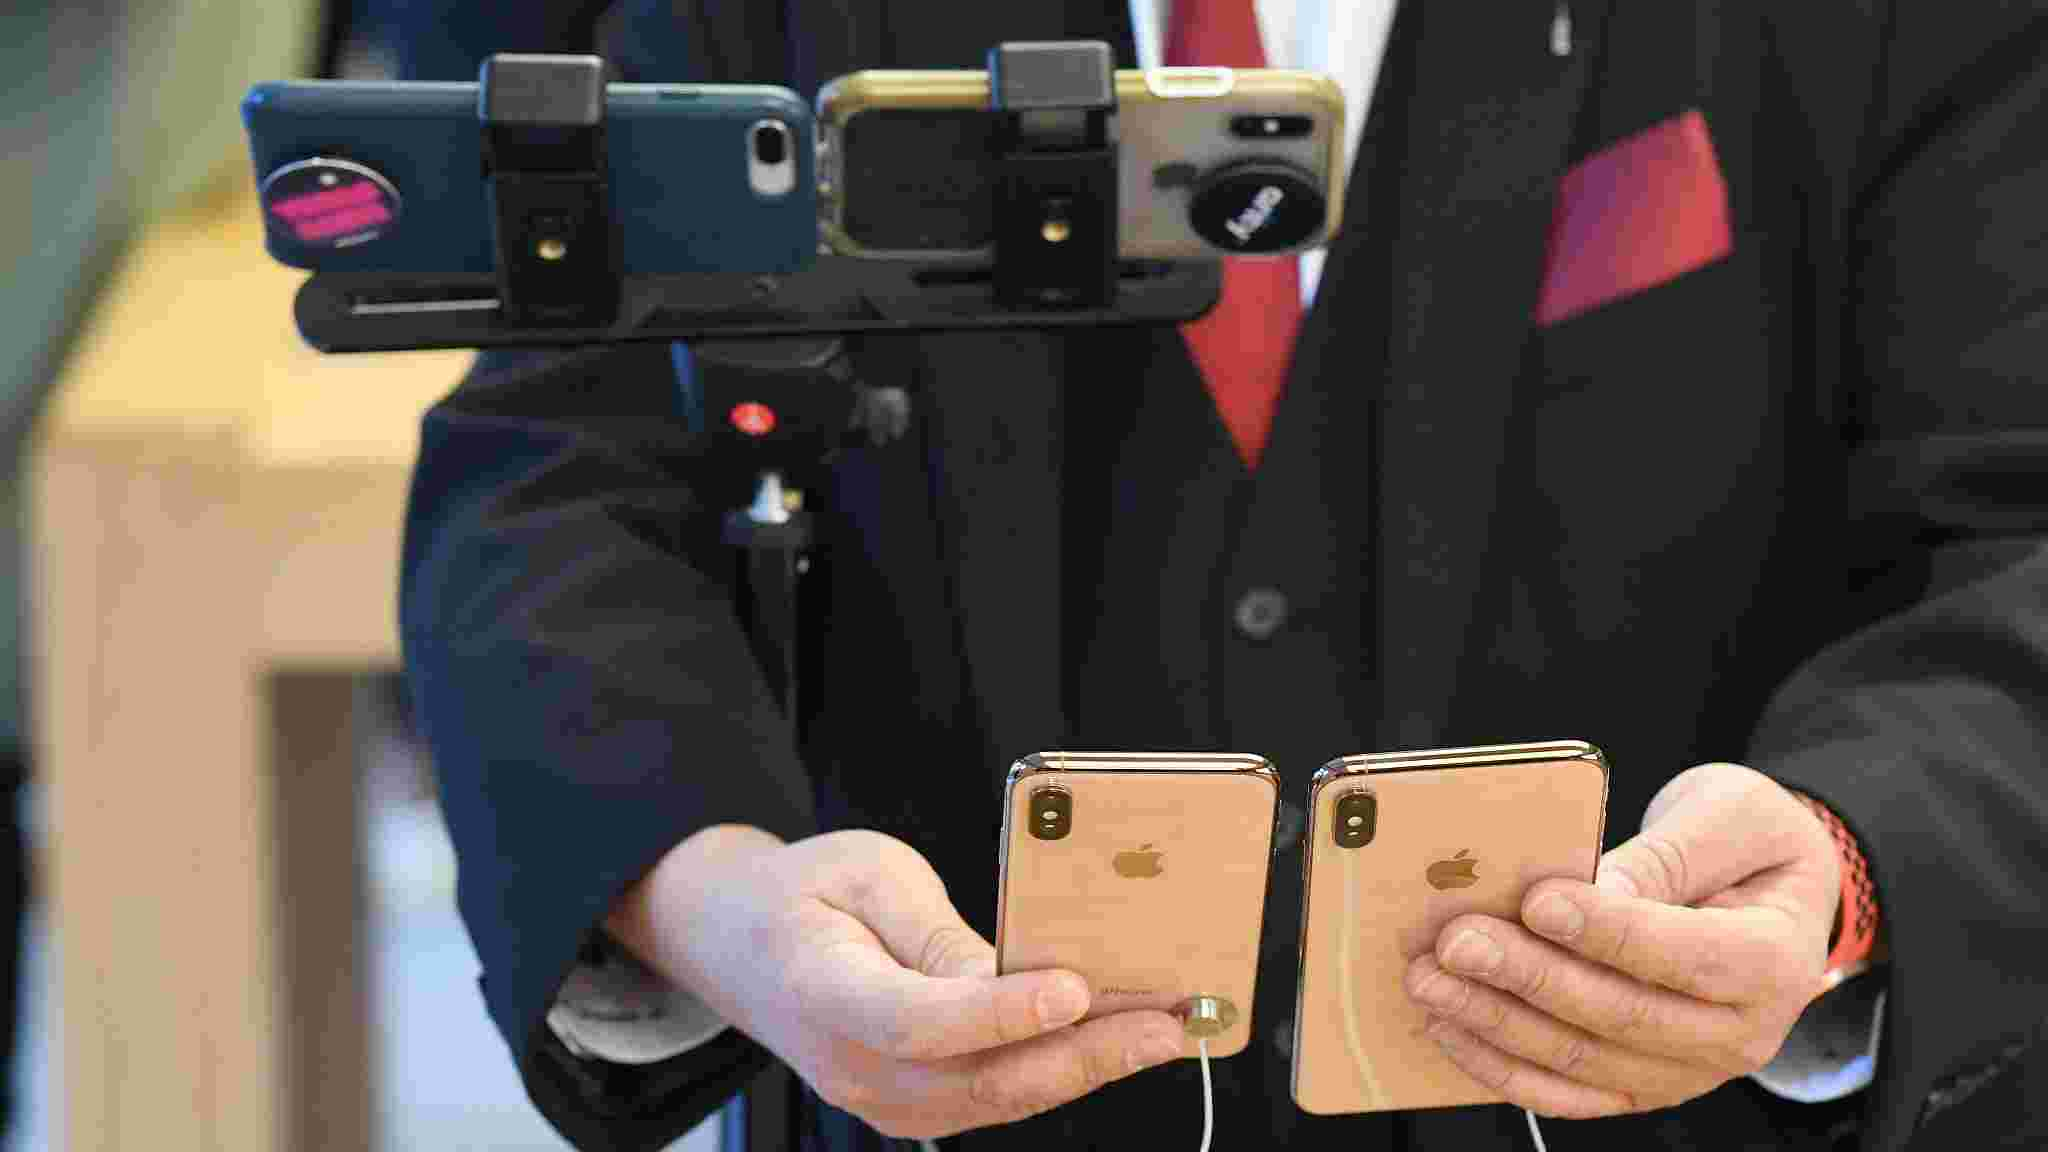 398c861fa59 A journalist uses two iPhones to film two of the new iPhones at the  Australian release of the latest iPhone models at the Apple Store in  Sydney